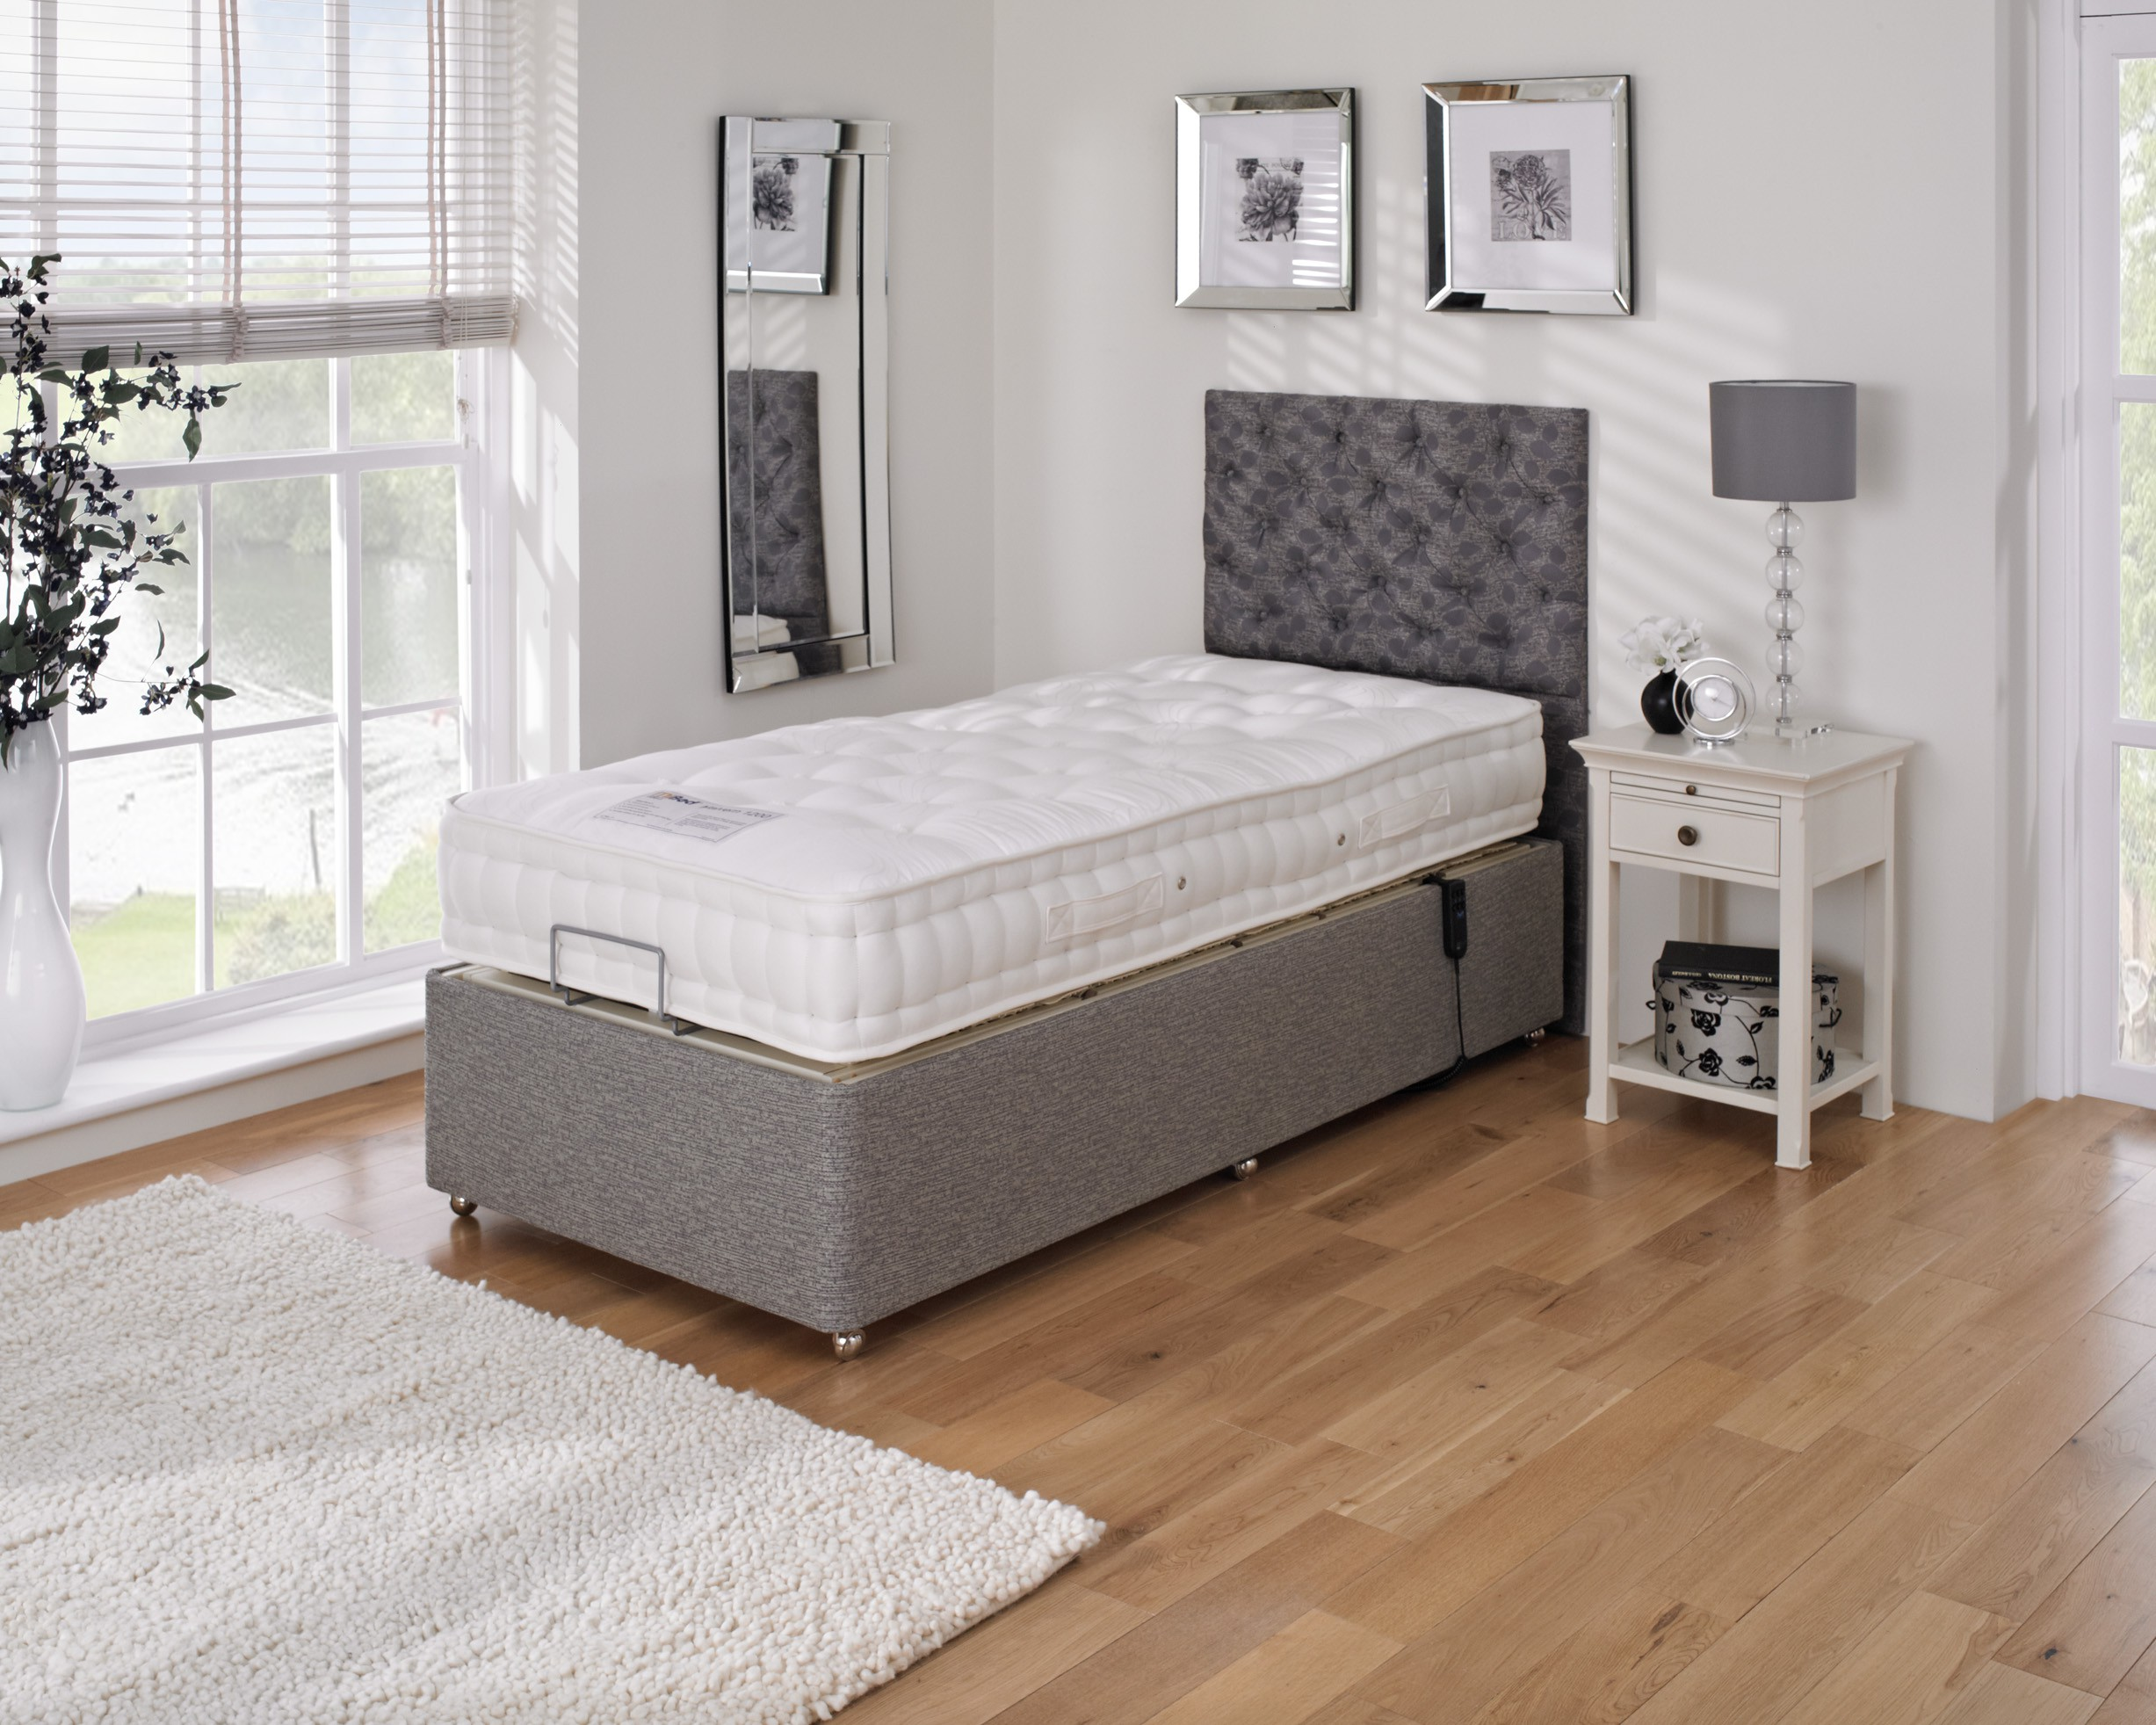 Electric Beds Ni : Mibed malvern electric adjustable bed